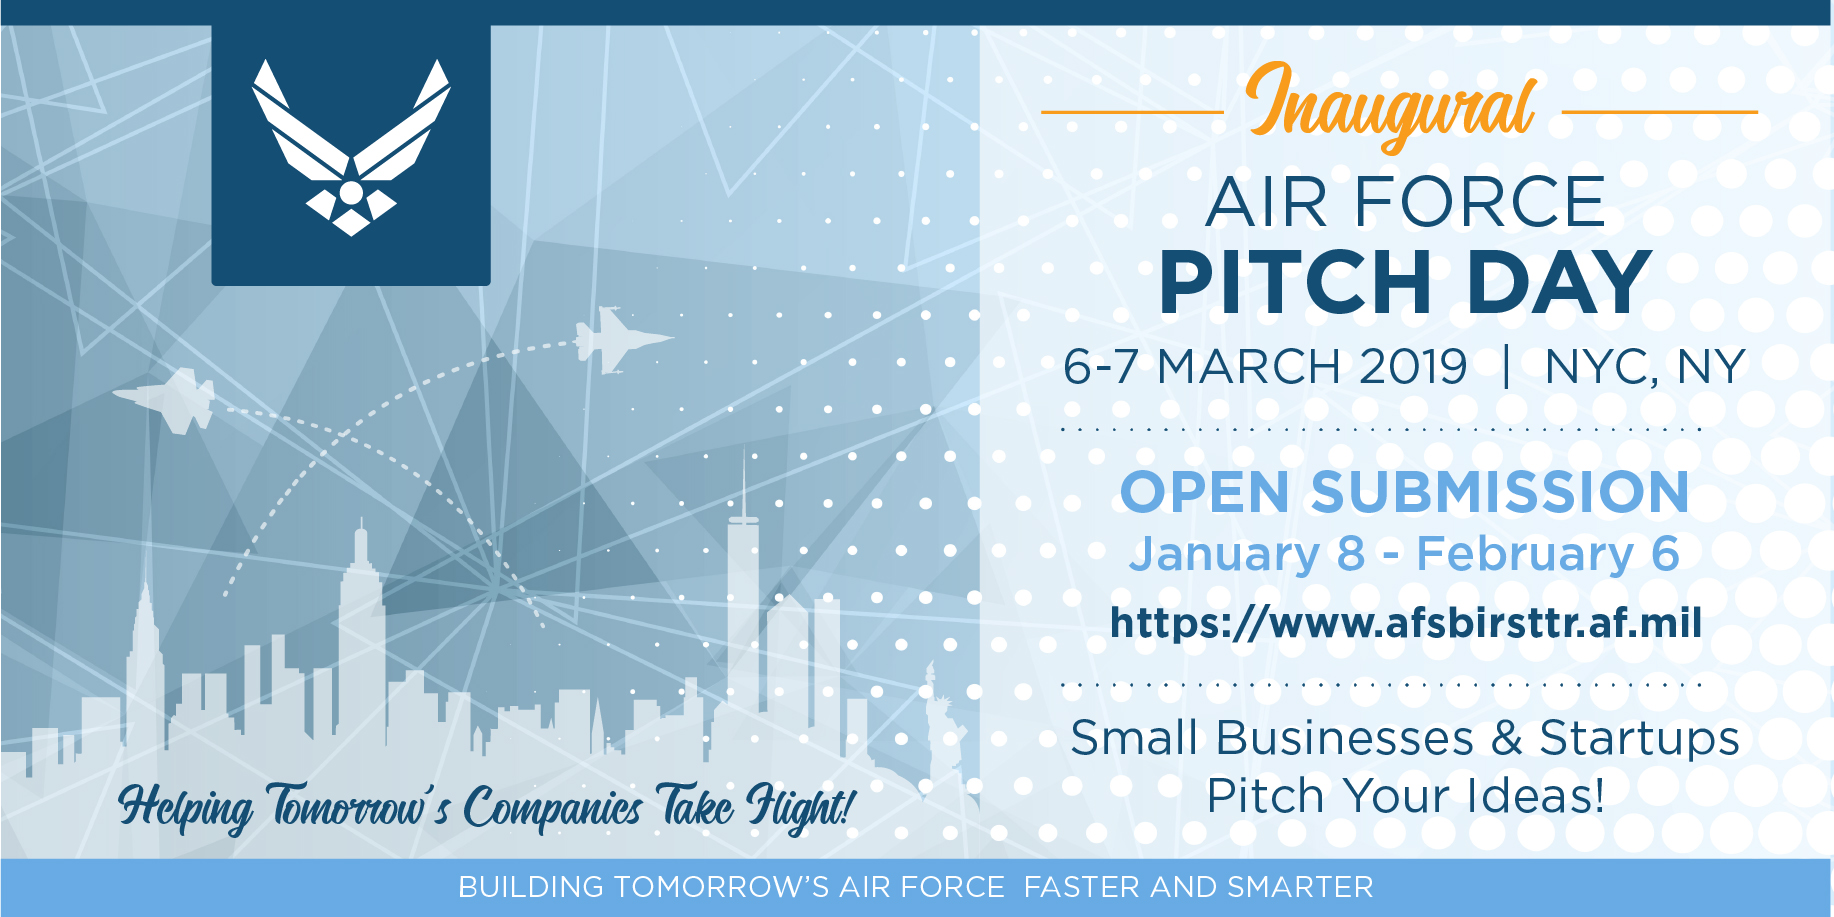 $40M available for start-ups, small businesses through Air